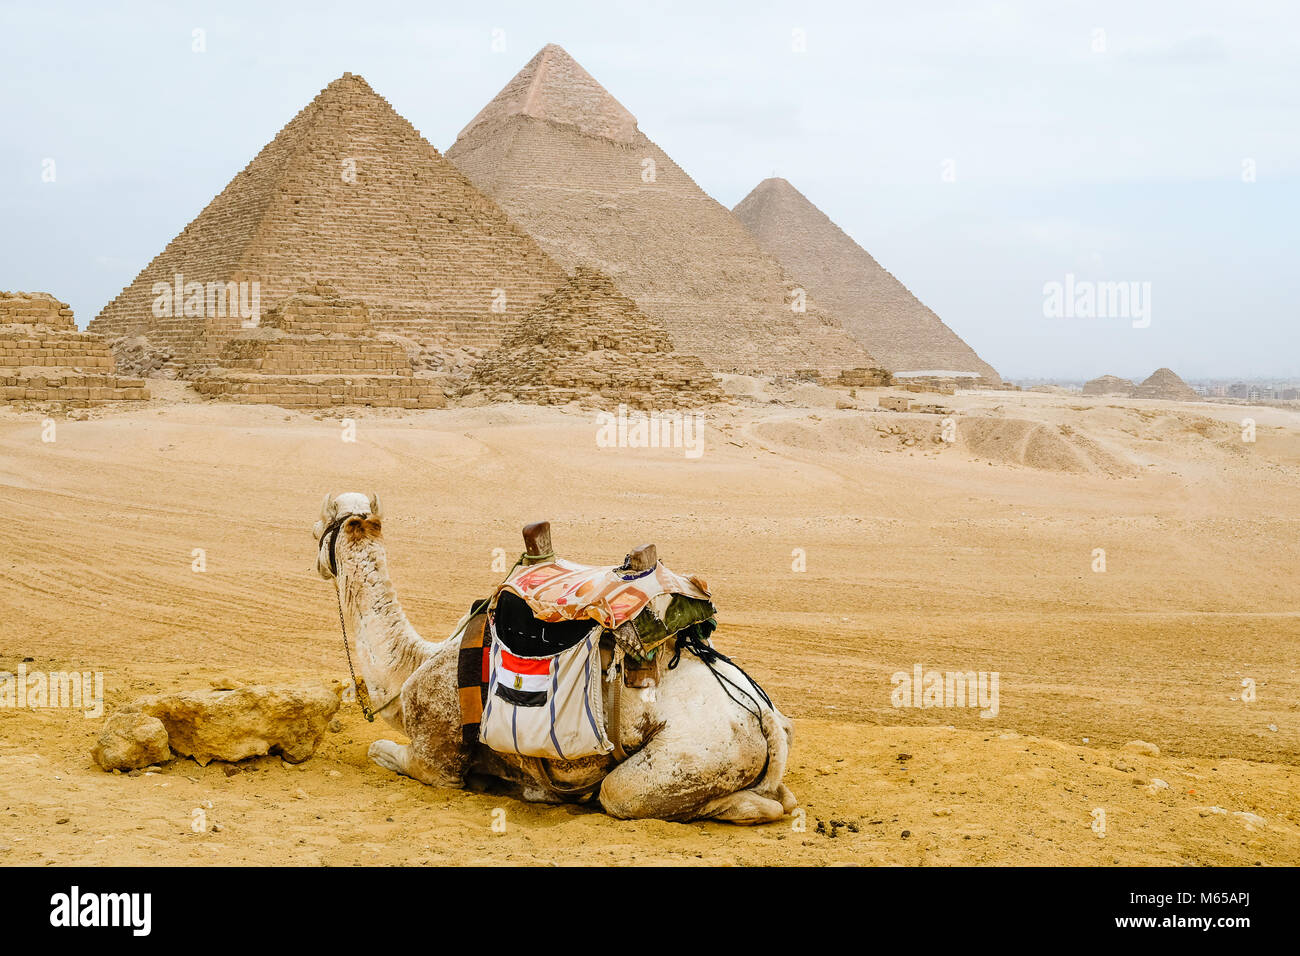 Camel sitting in front of the pyramids in Cairo - Stock Image